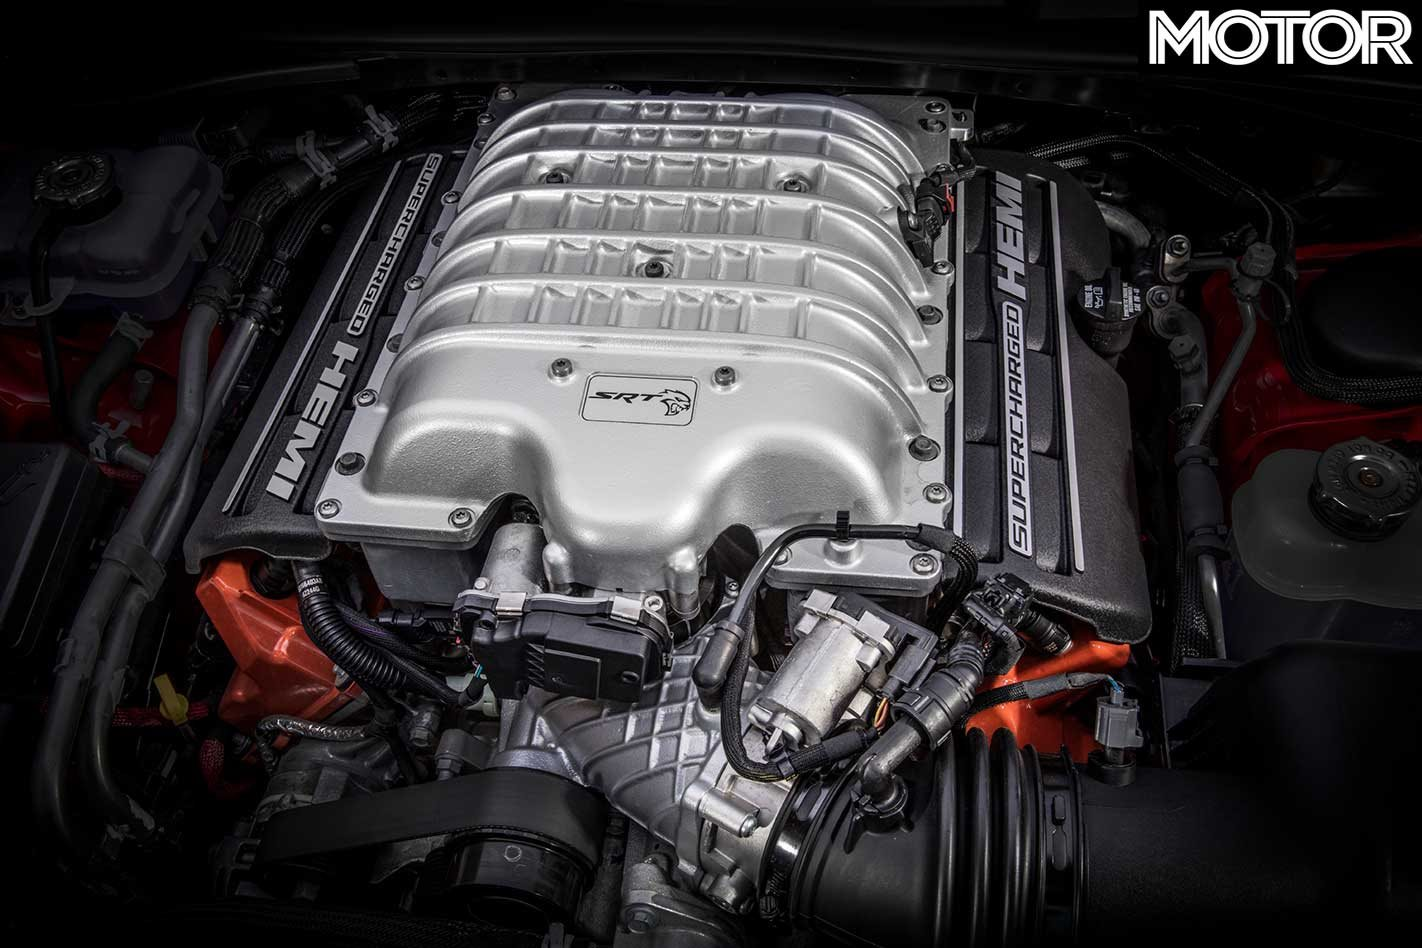 2020 Dodge Charger Srt Hellcat Widebody Motor First Drive Review